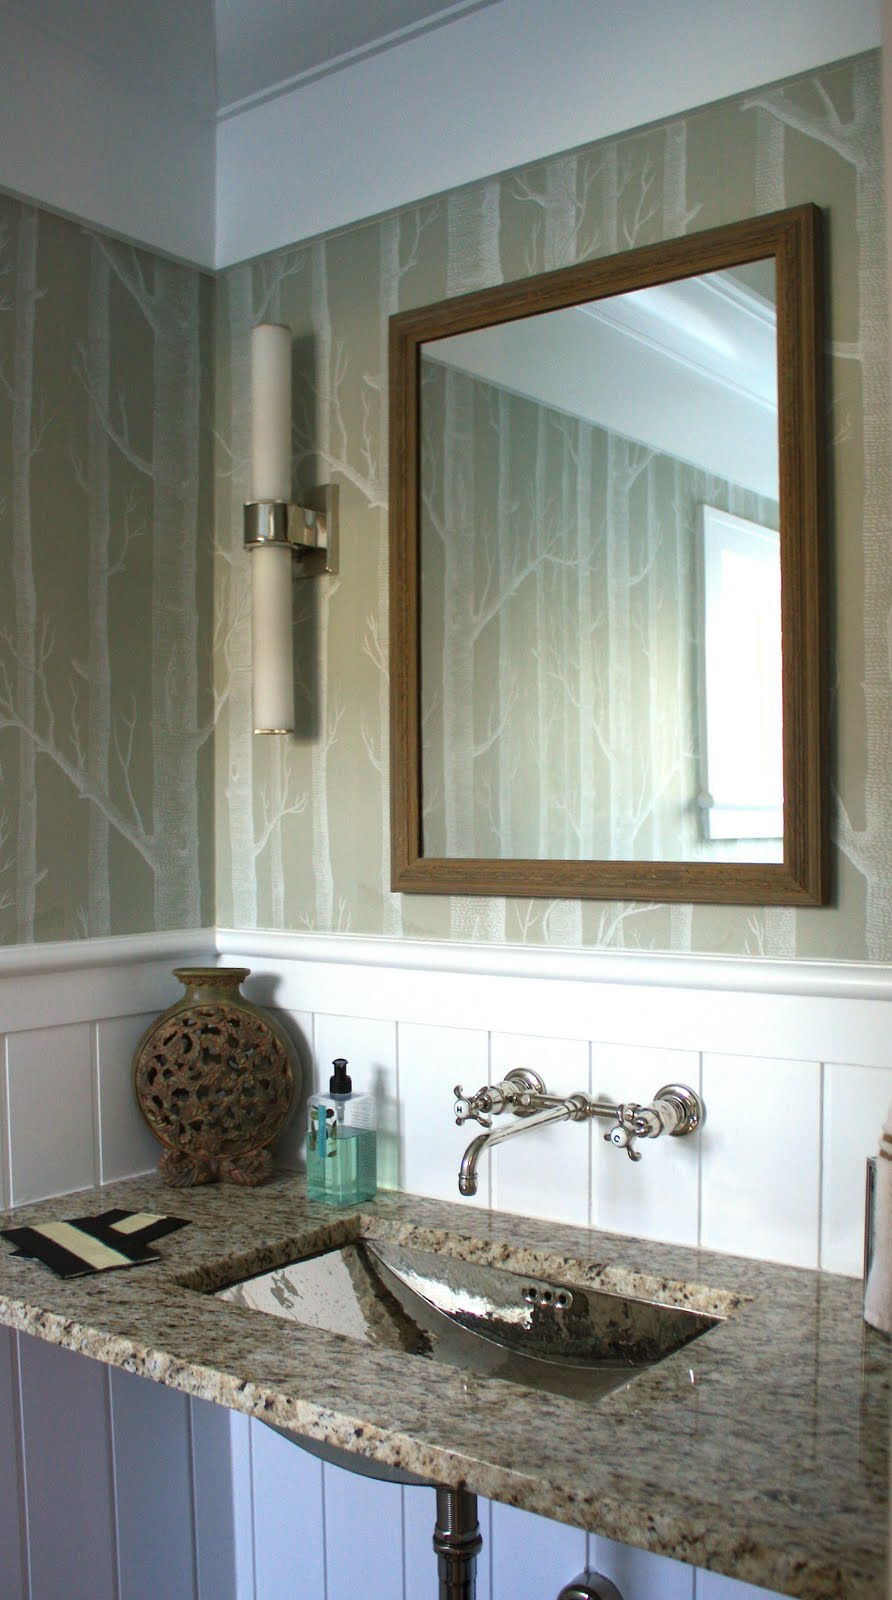 New small bathroom ideas photo gallery 2012 screen media for New small bathroom